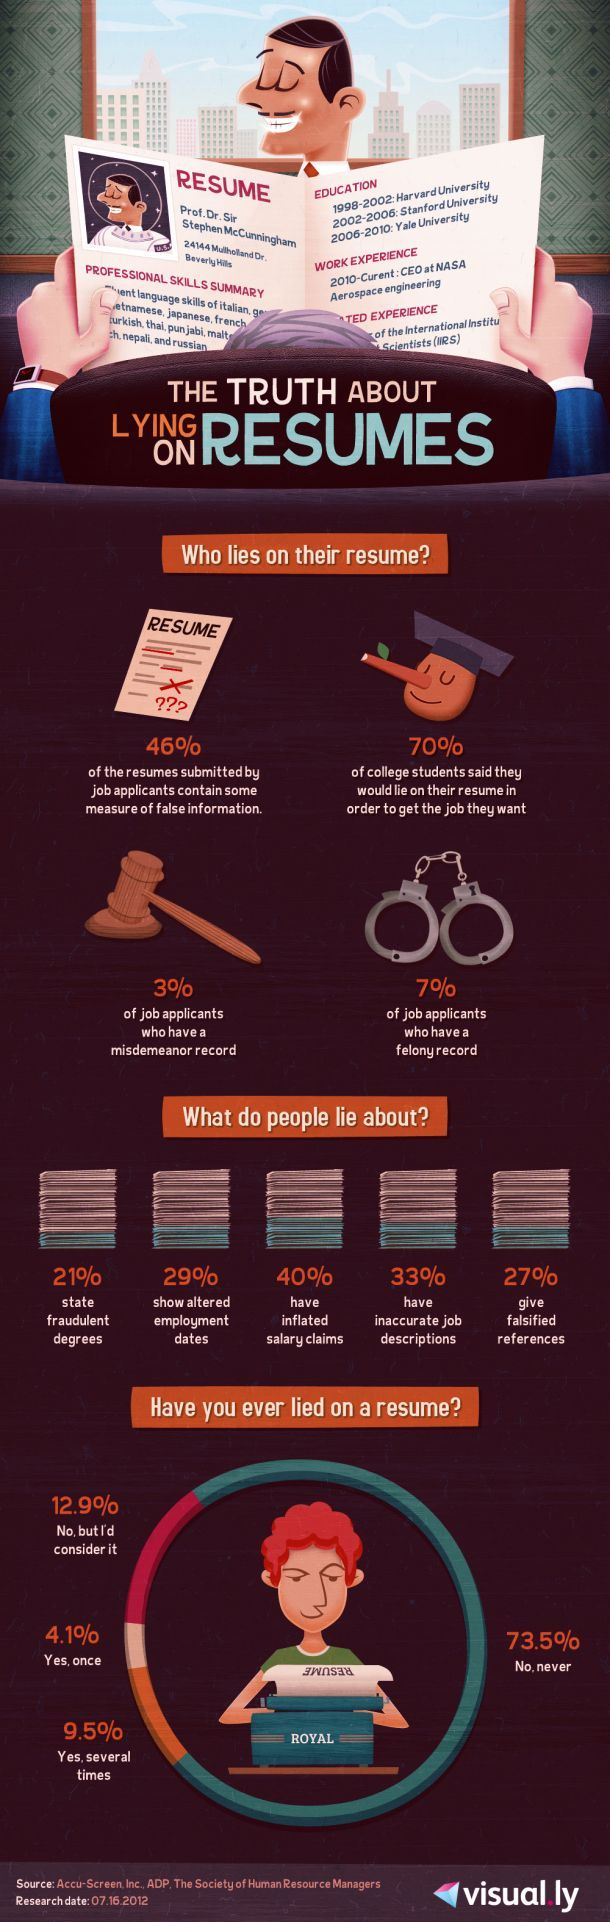 The Truth About Lying On Resumes INFOGRAPHIC